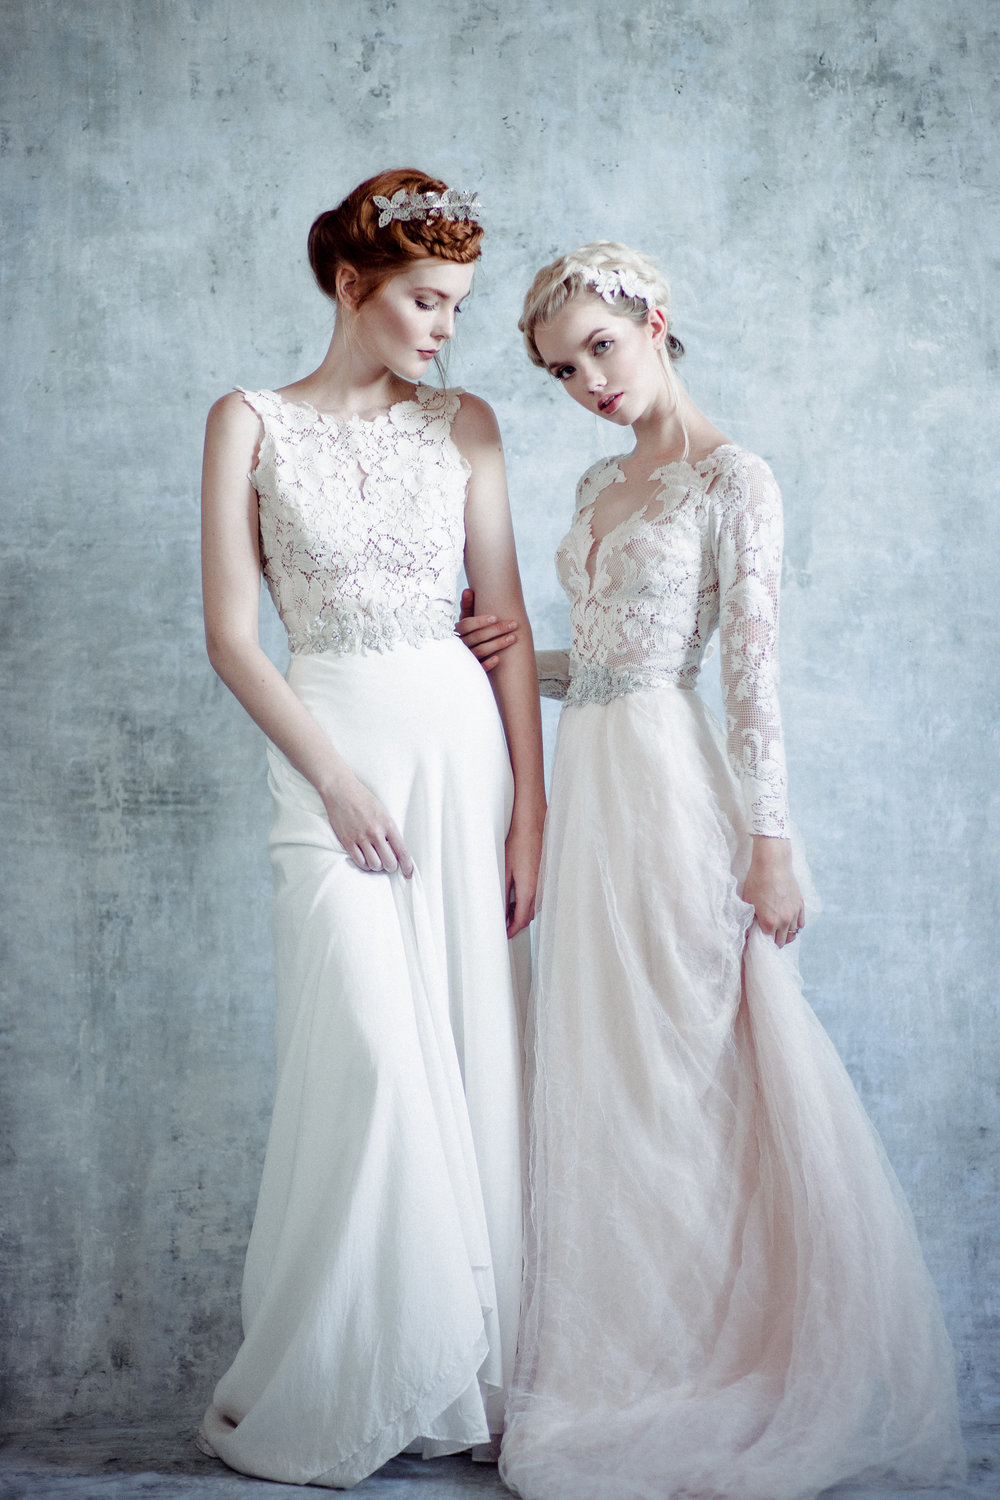 Linyage - Made with love in the Midwest, each top and bodysuit is designed from vintage lace and paired with ethereal silk skirts for a bridal look that is truly one of a kind and offers an heirloom quality to their pieces. Collection begins at $950.